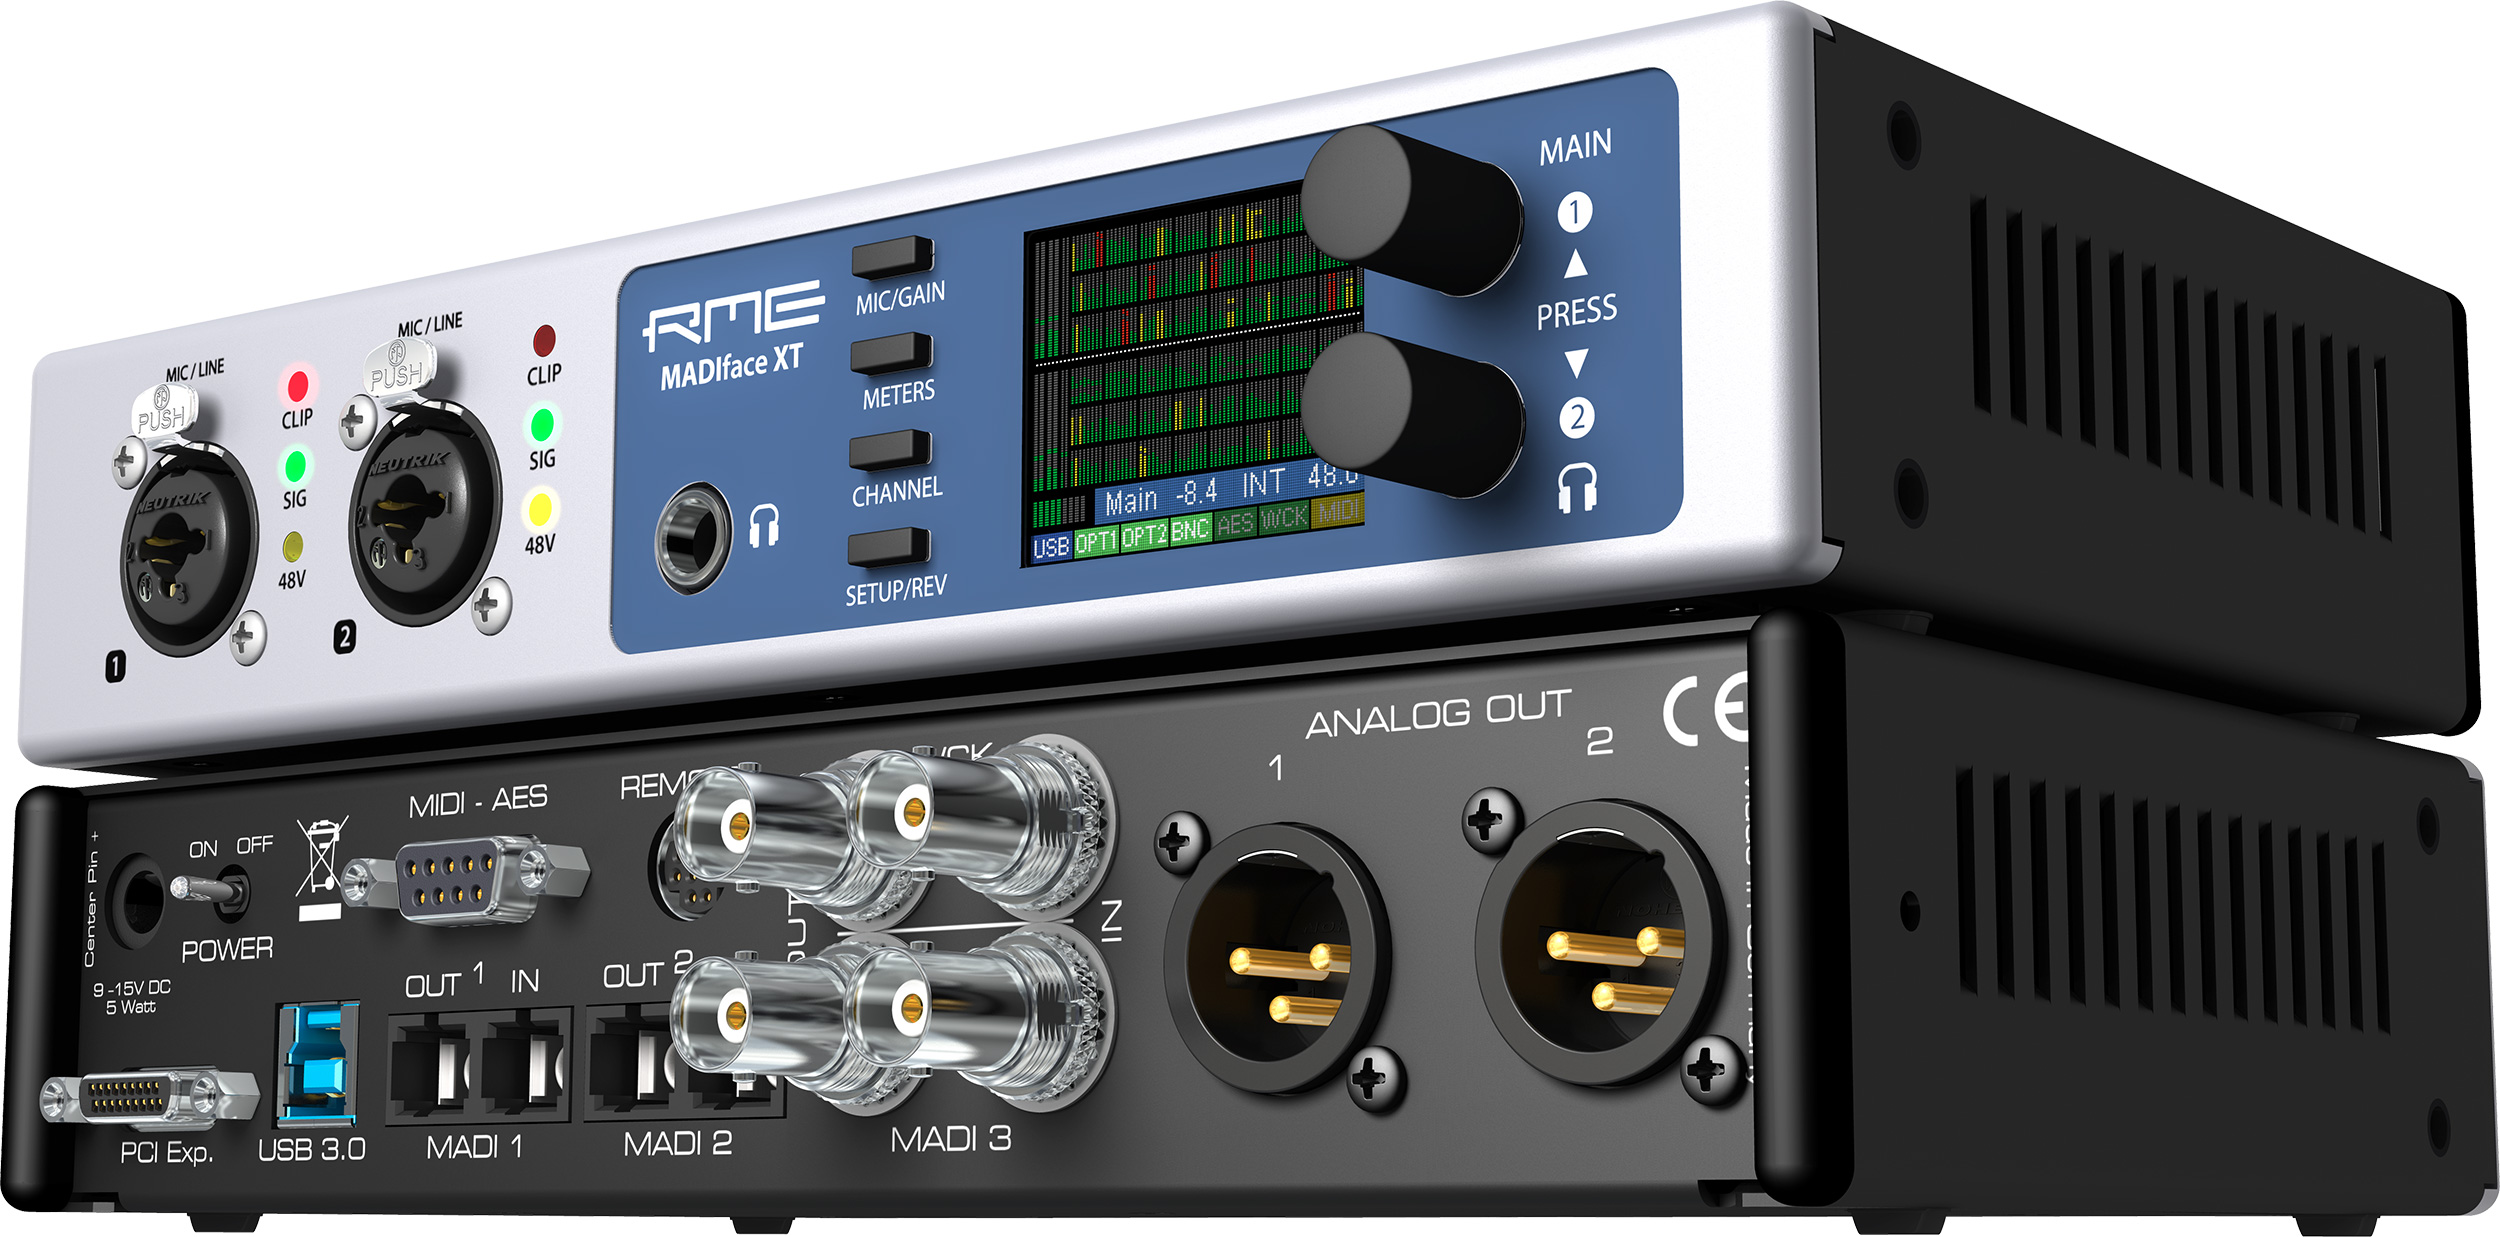 Rme Madiface Xt Pro Series 2channel Line Output Converter With Remote Turnon Circuit